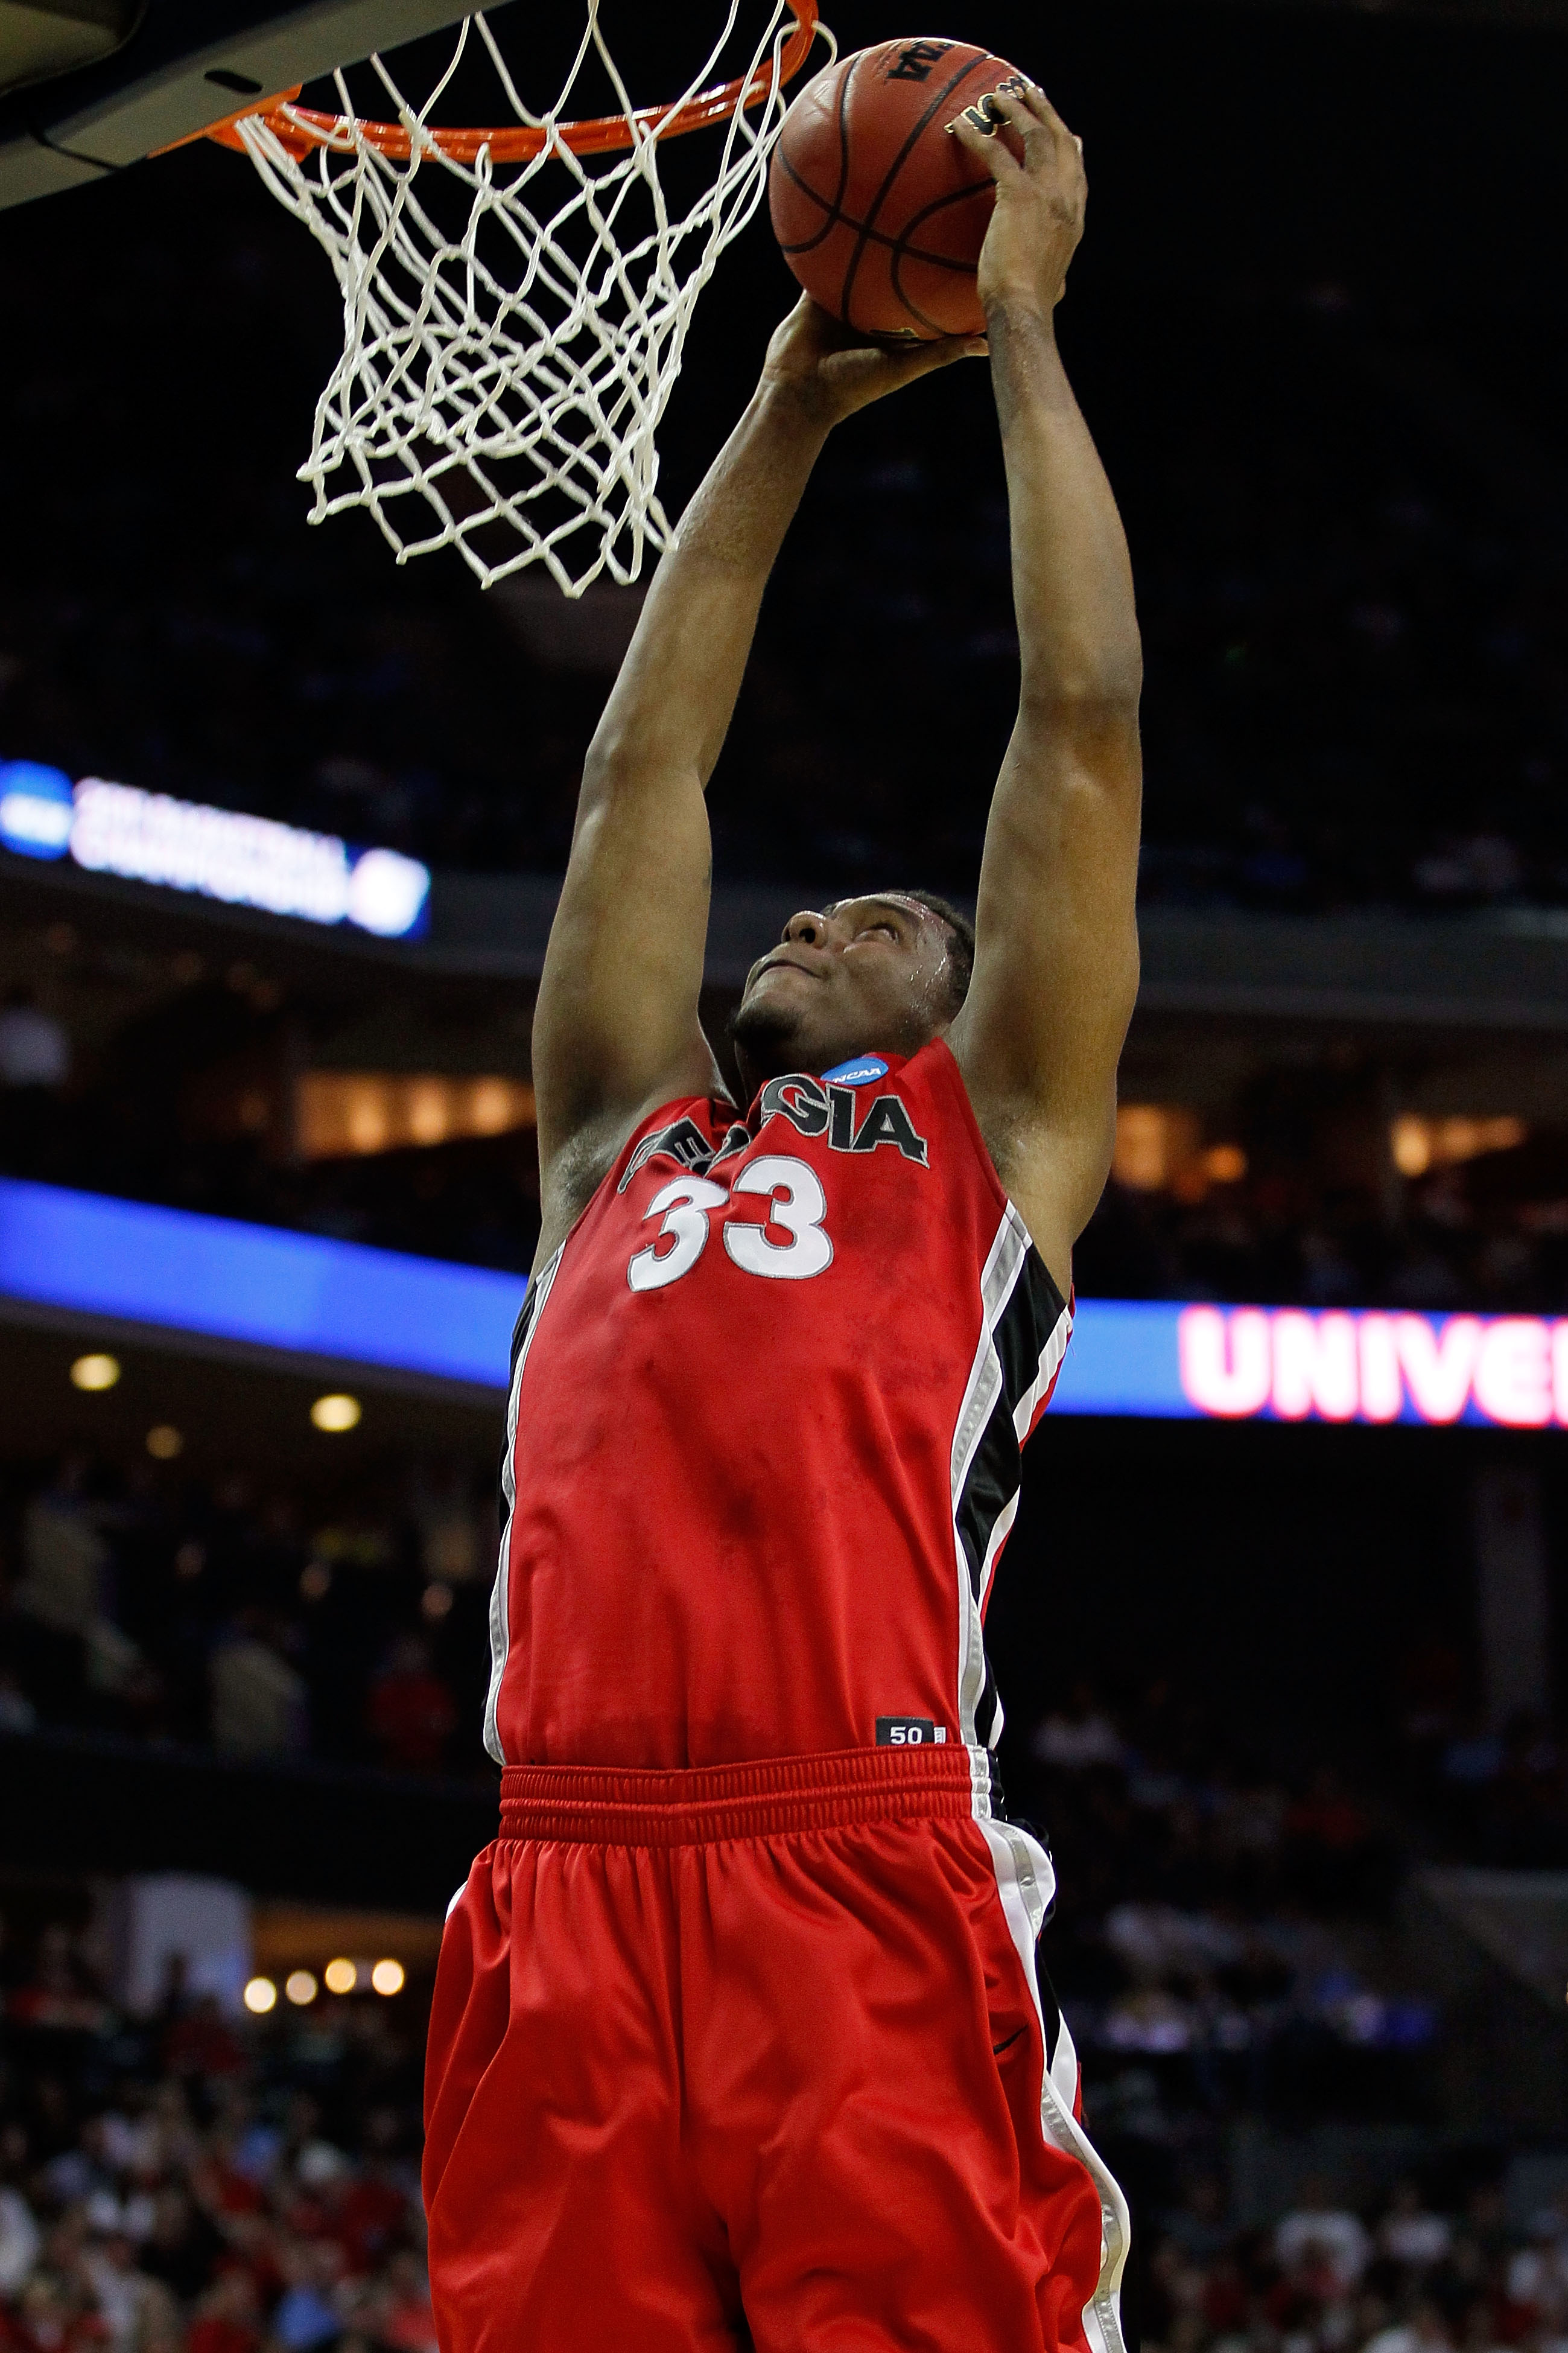 Trey Thompkins is an incredibly intelligent basketball player that could contribute right away.